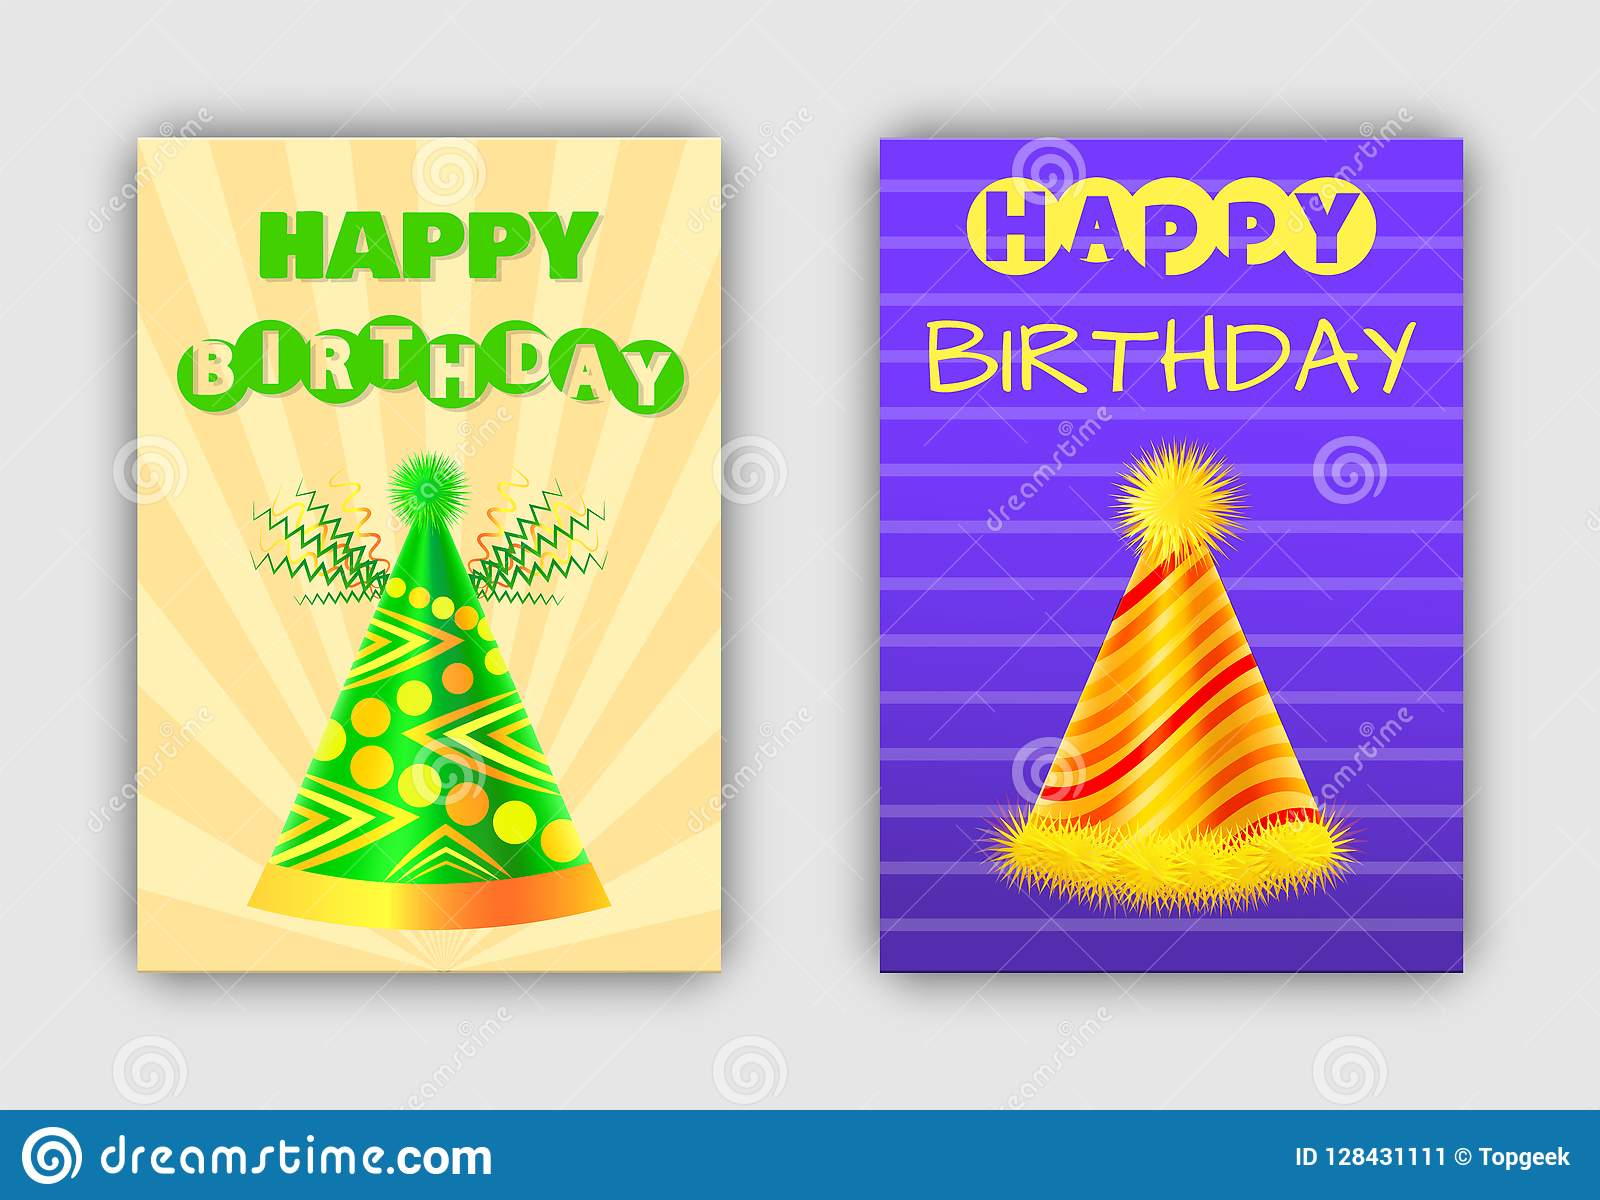 63512ab3c Glowing Happy Birthday Postcards With Holiday Hats Stock Vector ...